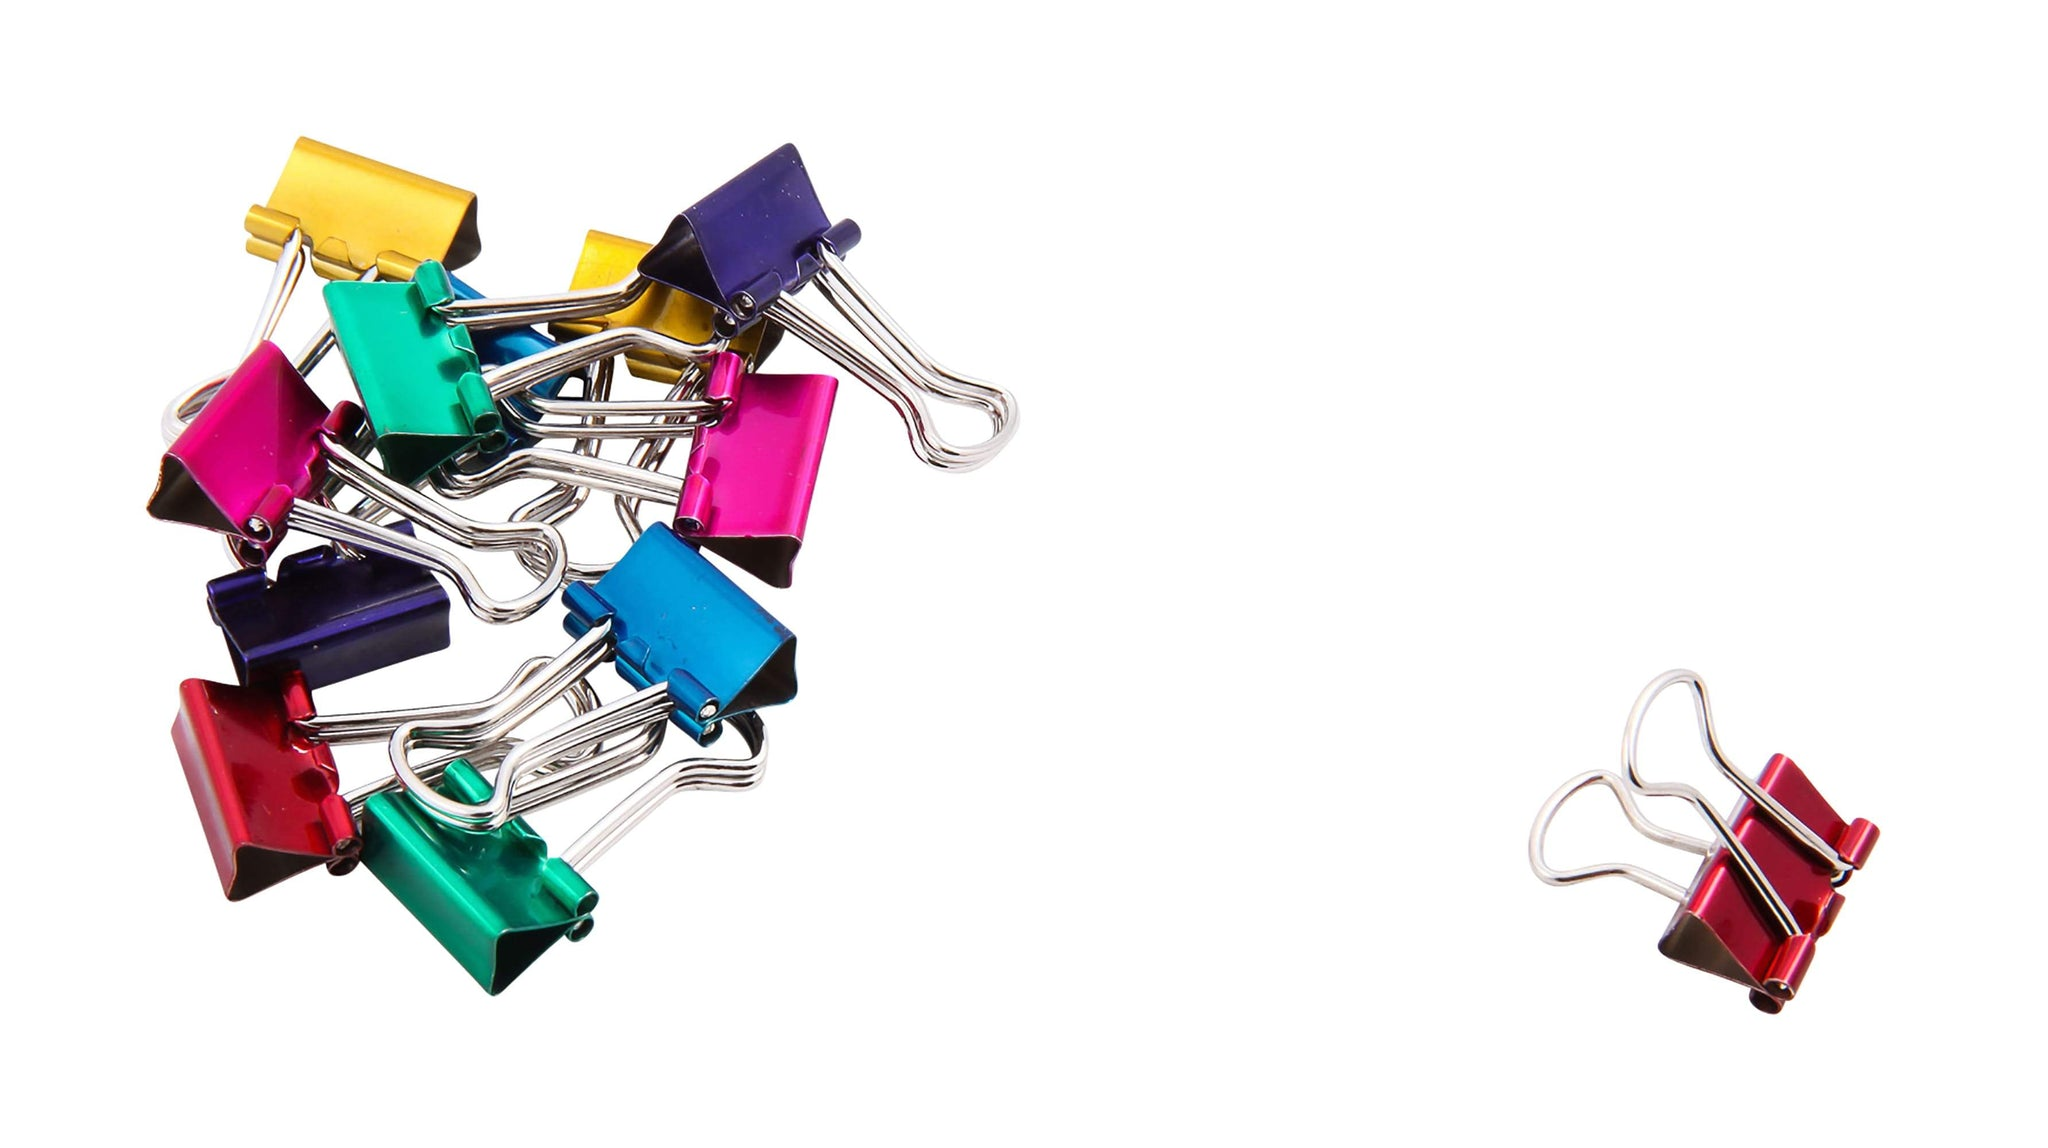 Baumgartens Metallic Designer Binder Clips Mini 12 Pack ASSORTED Colors (29710)